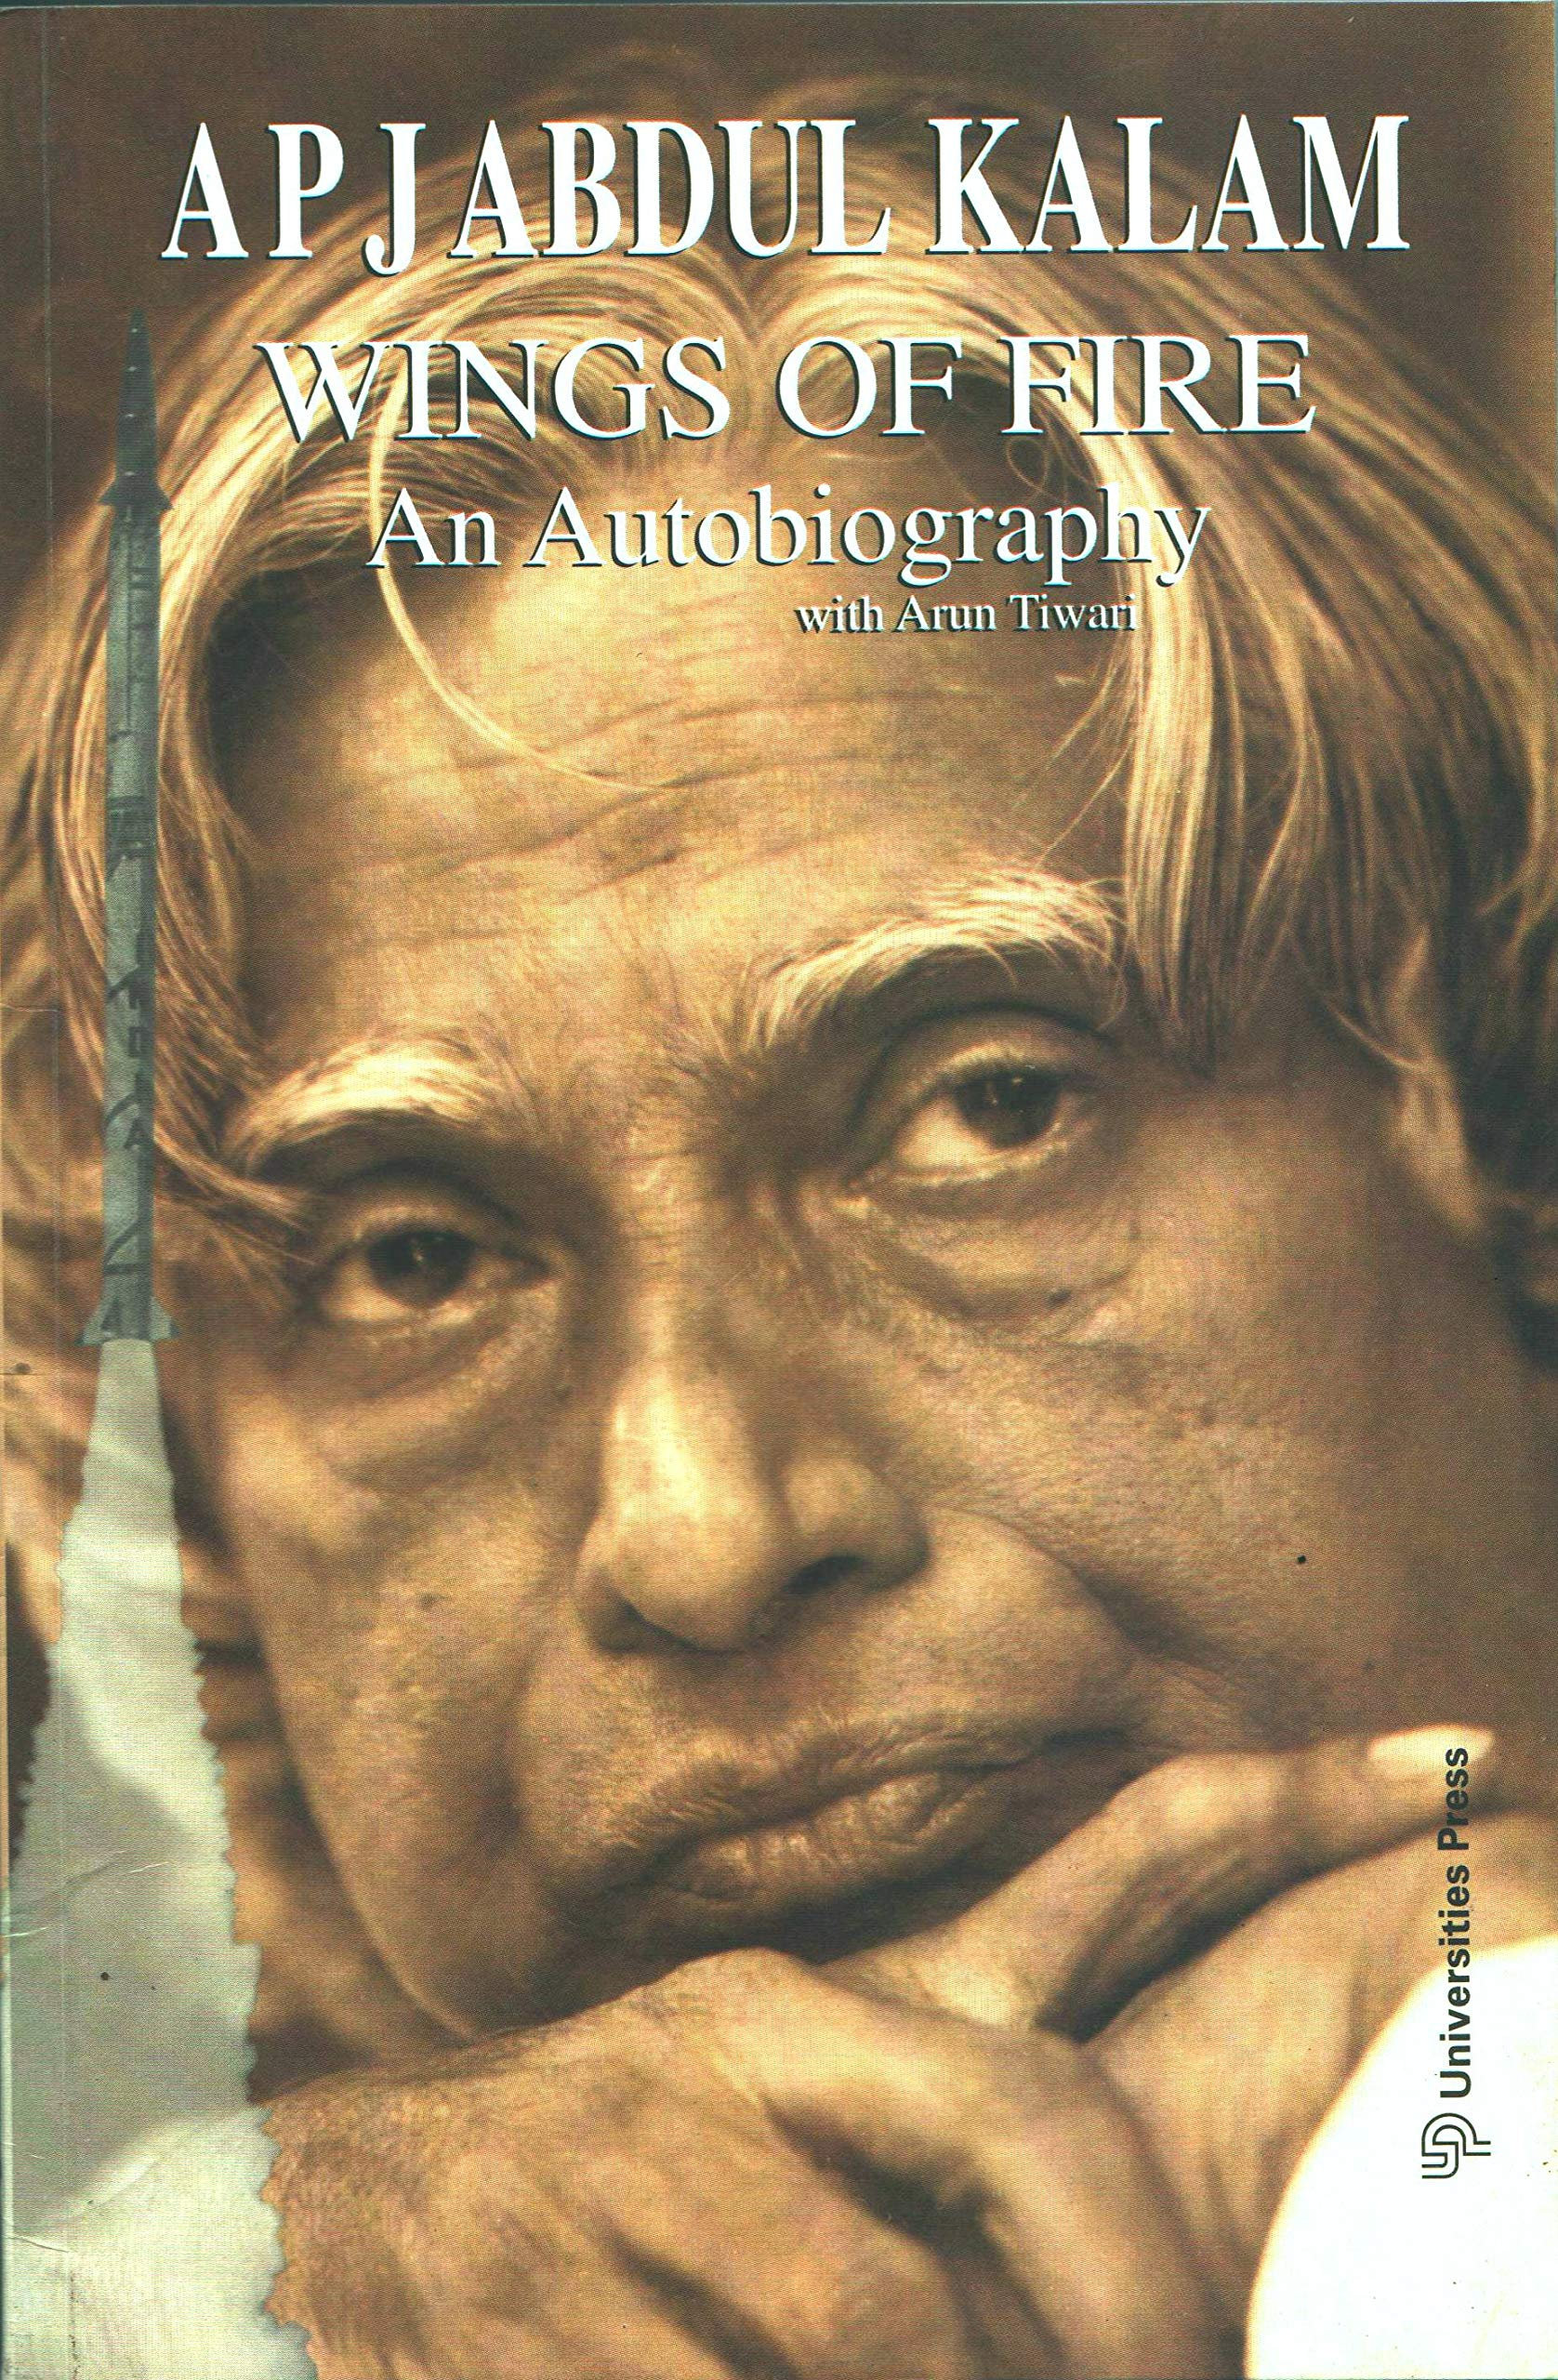 A P J Abdul Kalam-Wings of Fire (An Autobiography with Arun Tiwari) | Dale  Novels